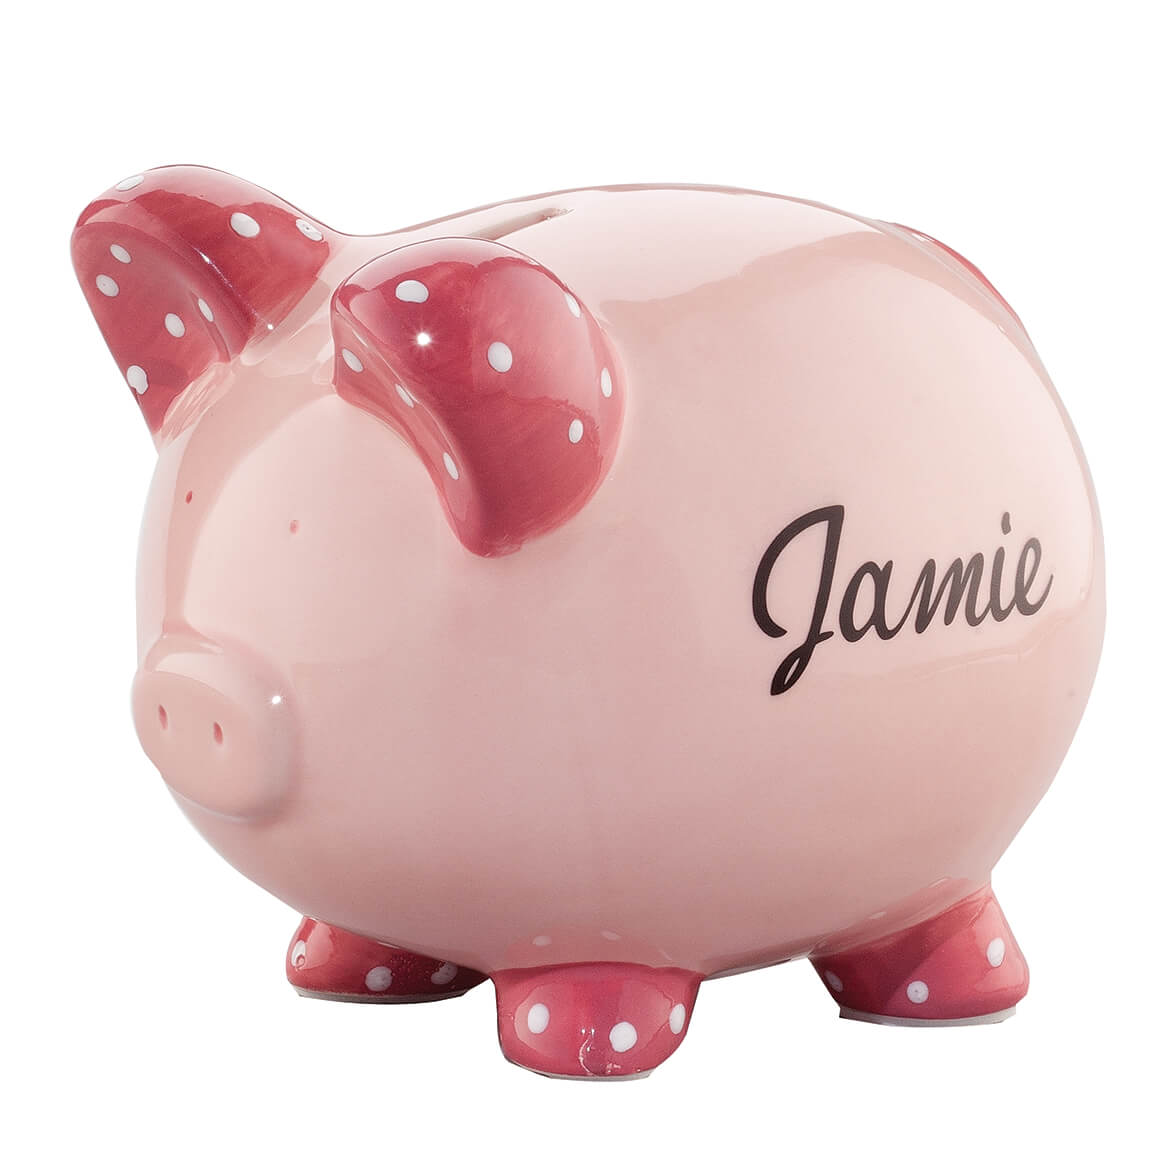 Personalized Children's Piggy Bank-311070